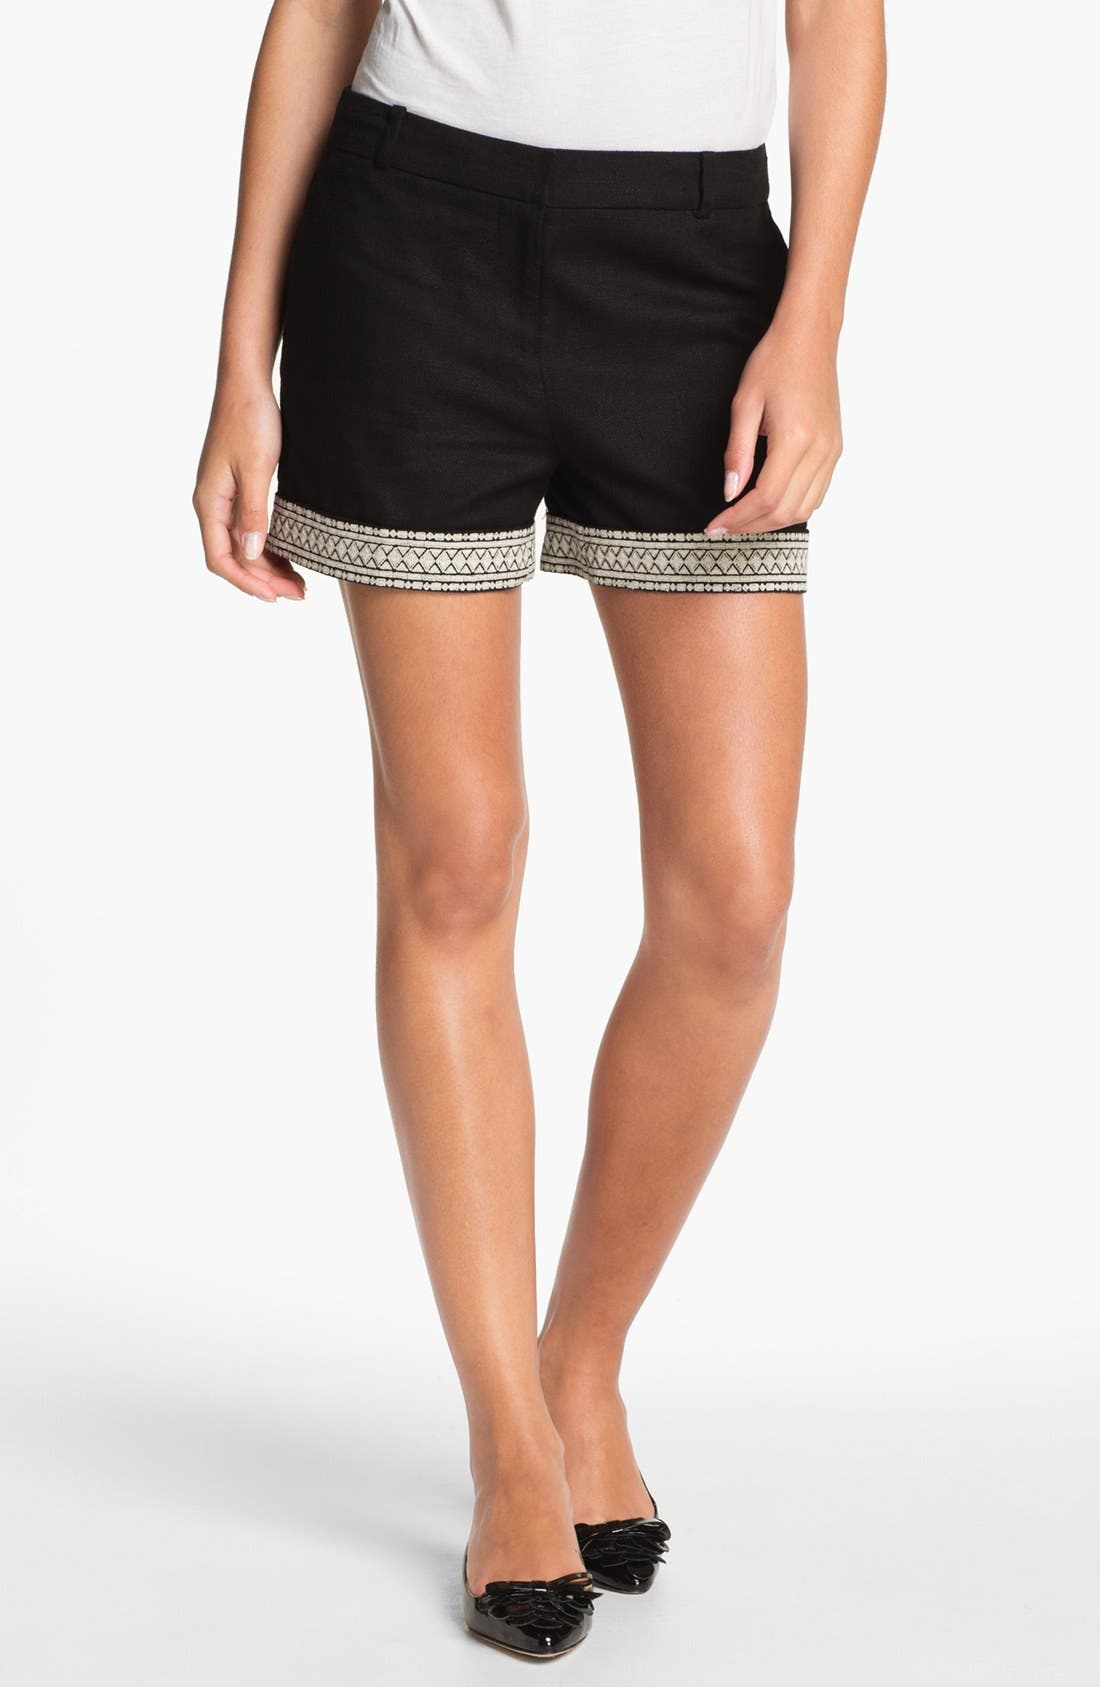 Alternate Image 1 Selected - kate spade new york 'roslyn' embroidered shorts